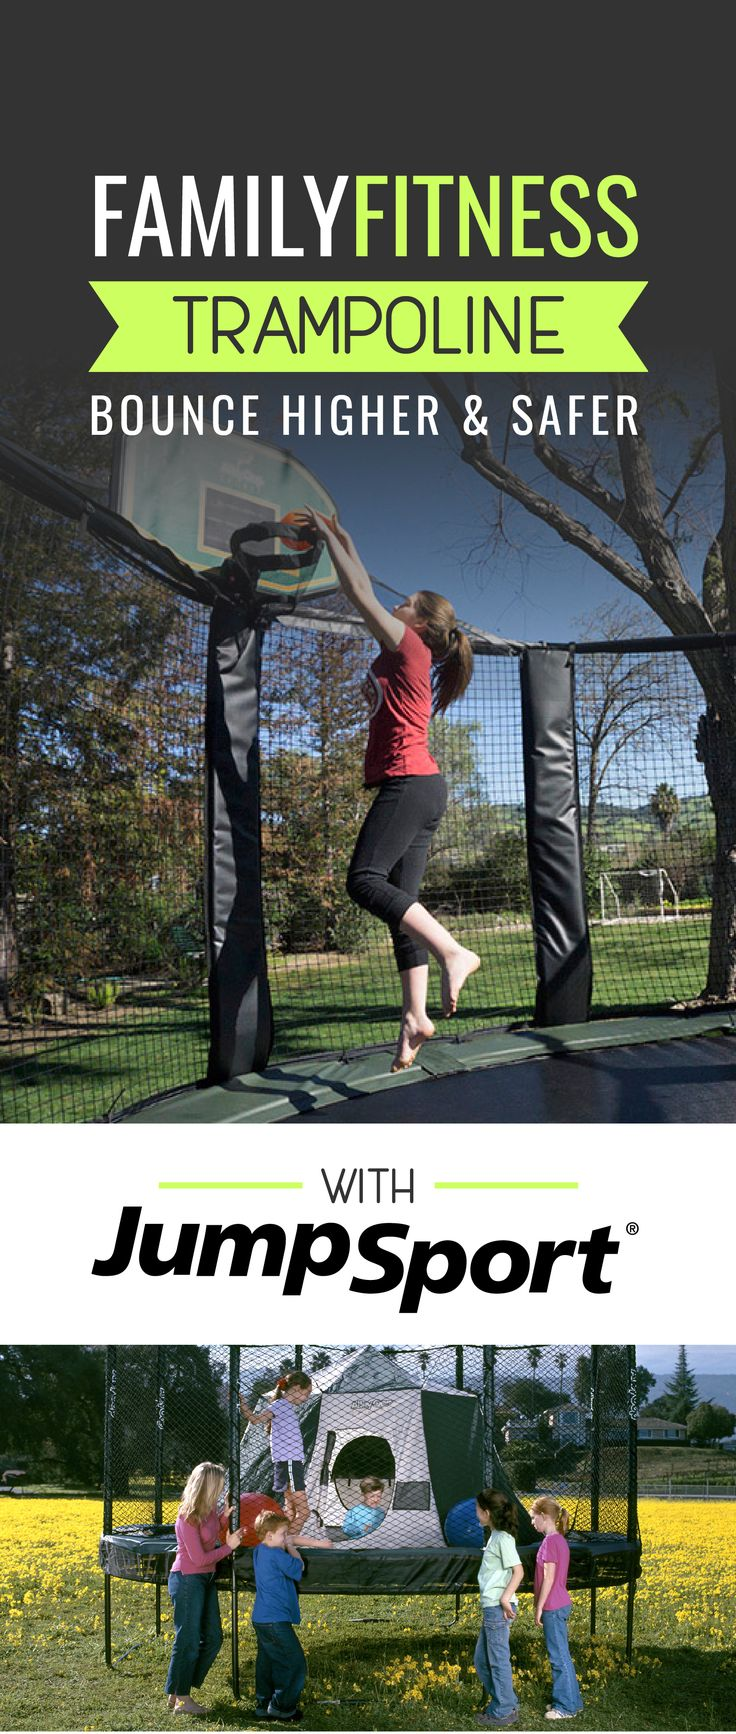 A backyard trampoline for the family is the perfect summer activity!  Visit: https://www.jumpsport.com/backyard/trampoline-sale  These trampolines are rated the world's safest with double bounce technology and incredible safety features. JumpSport Trampolines are the leading brand for quality and product innovation.  #jumpsport